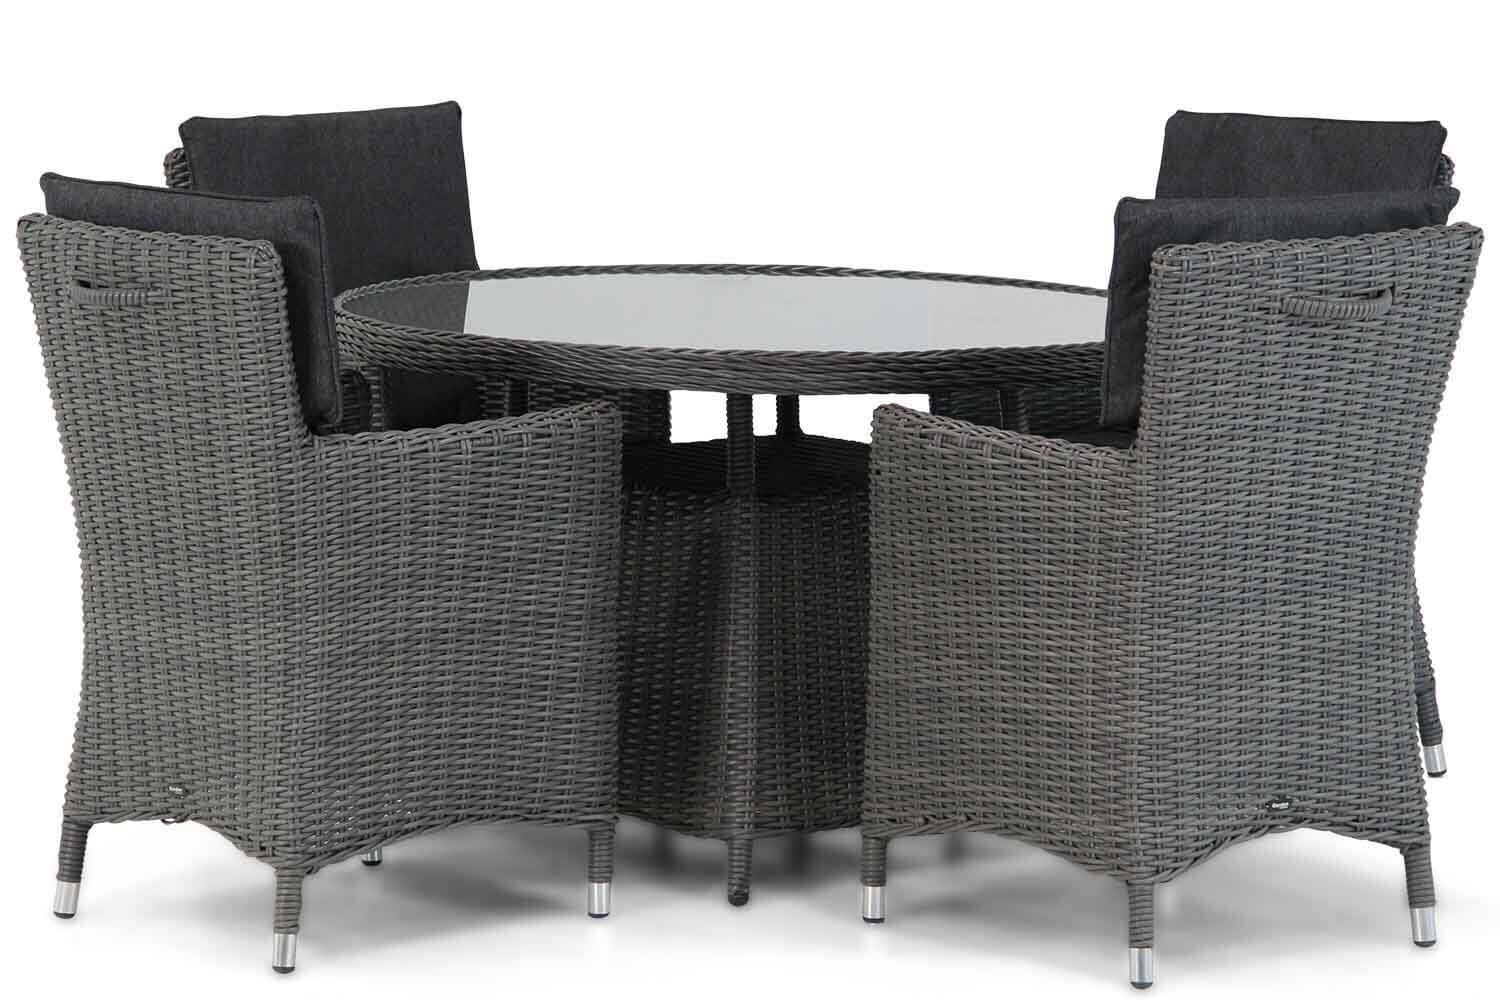 Garden Collections Springfield/Buckingham 115 cm rond dining tuinset 5-delig